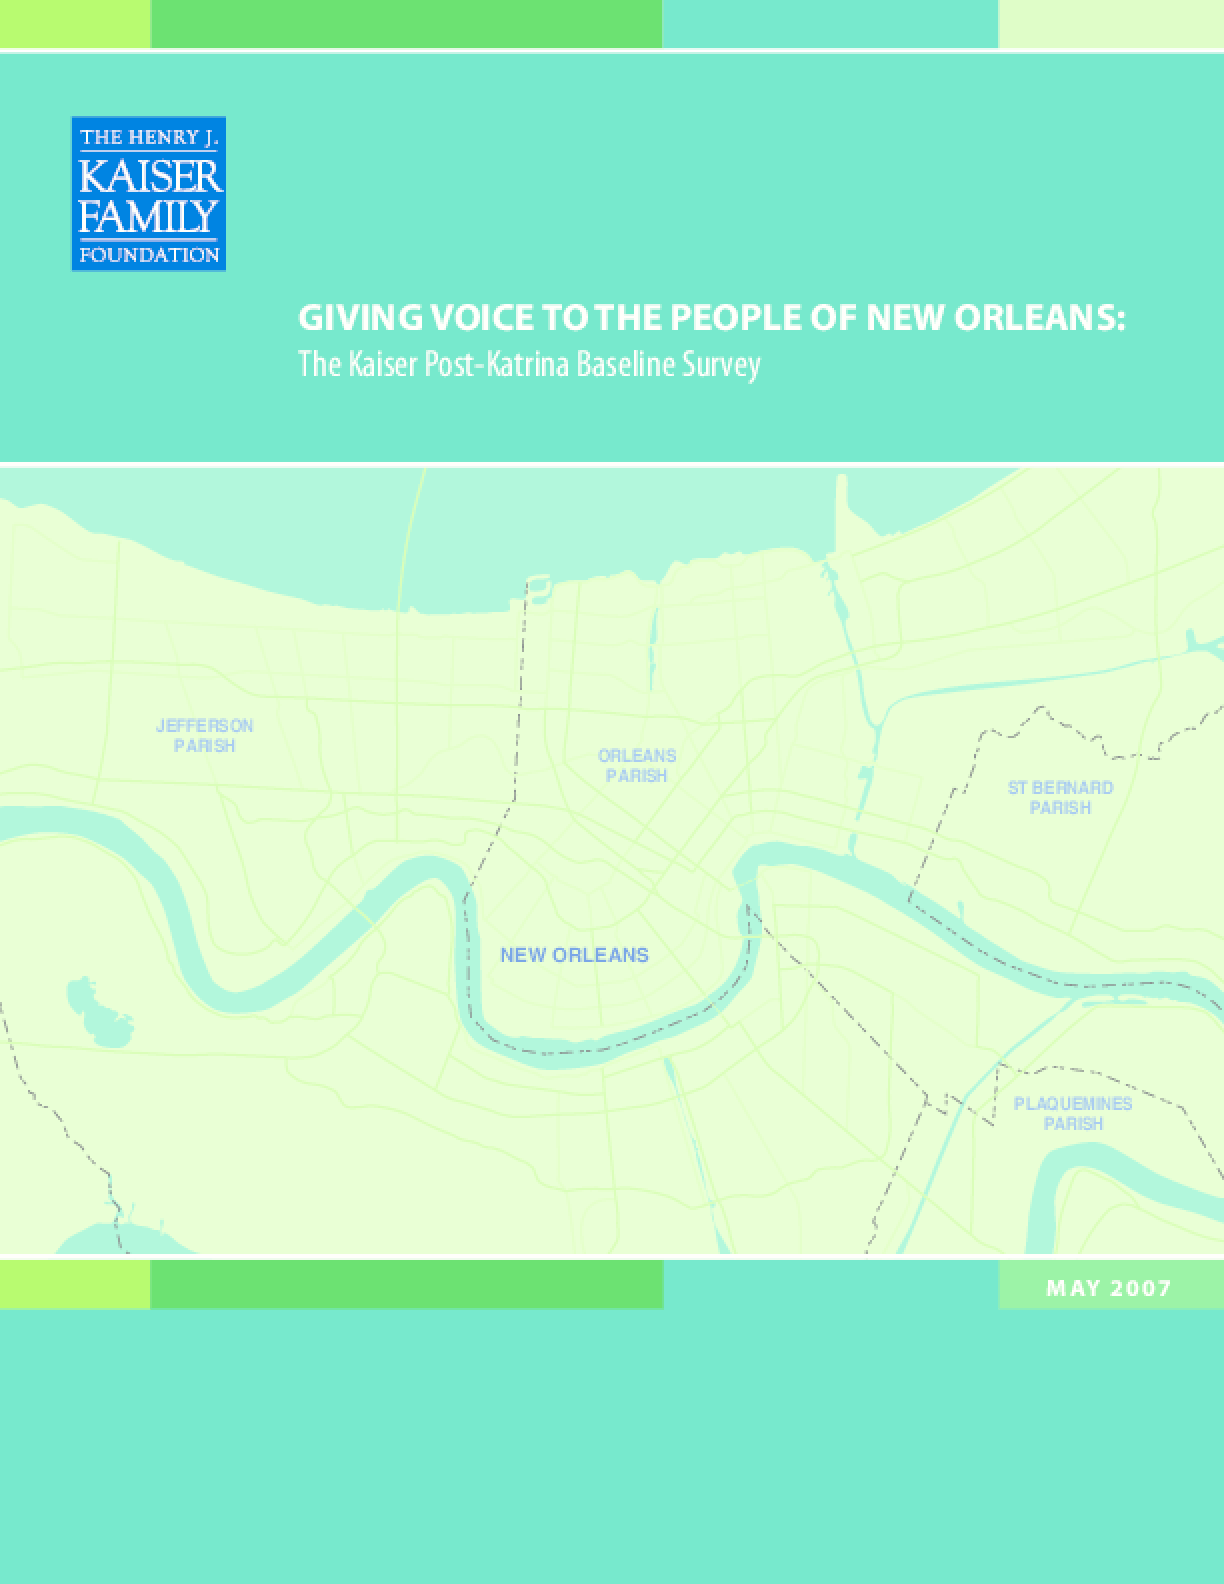 Giving Voice to the People of New Orleans: The Kaiser Post-Katrina Baseline Survey